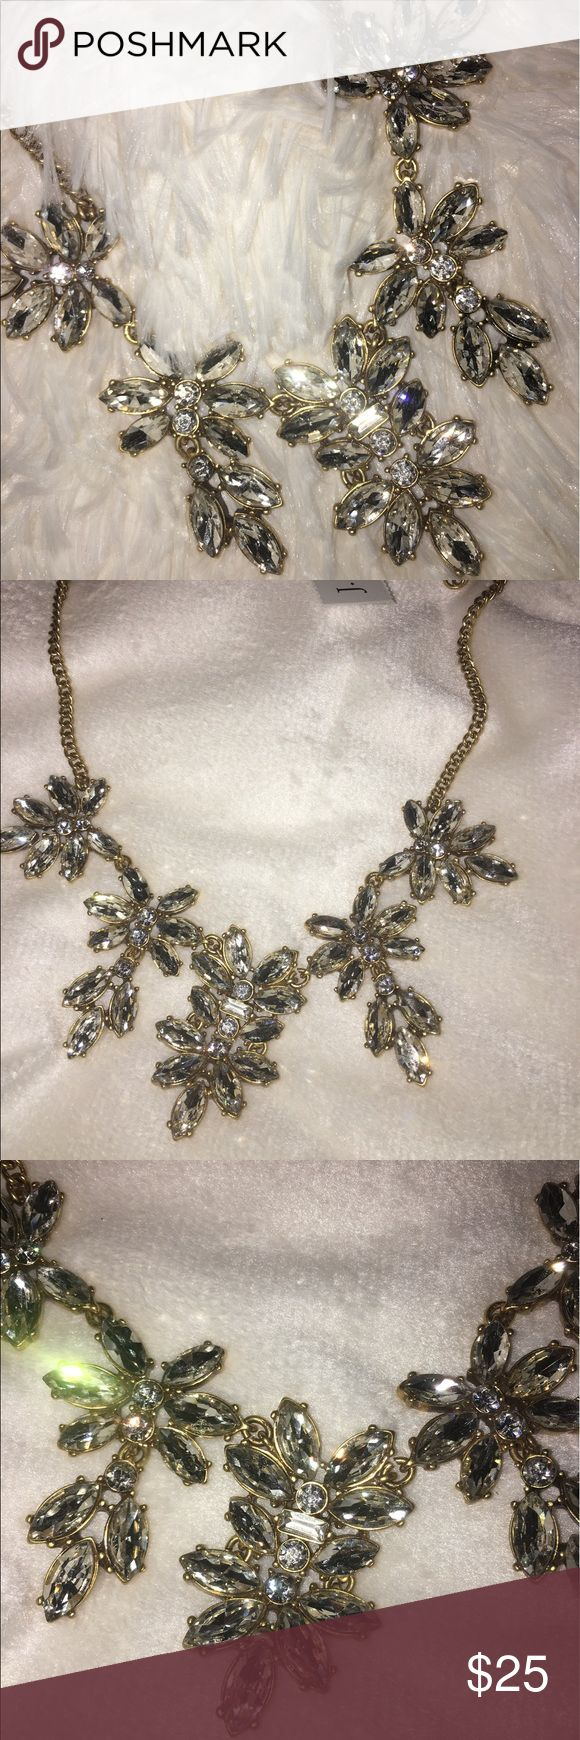 😍J CREW NECKLACE👸🏼 I don't remember if I got this at J Crew or J Crew Factory, but it is still FABULOUS 😍 J. Crew Factory Jewelry Necklaces